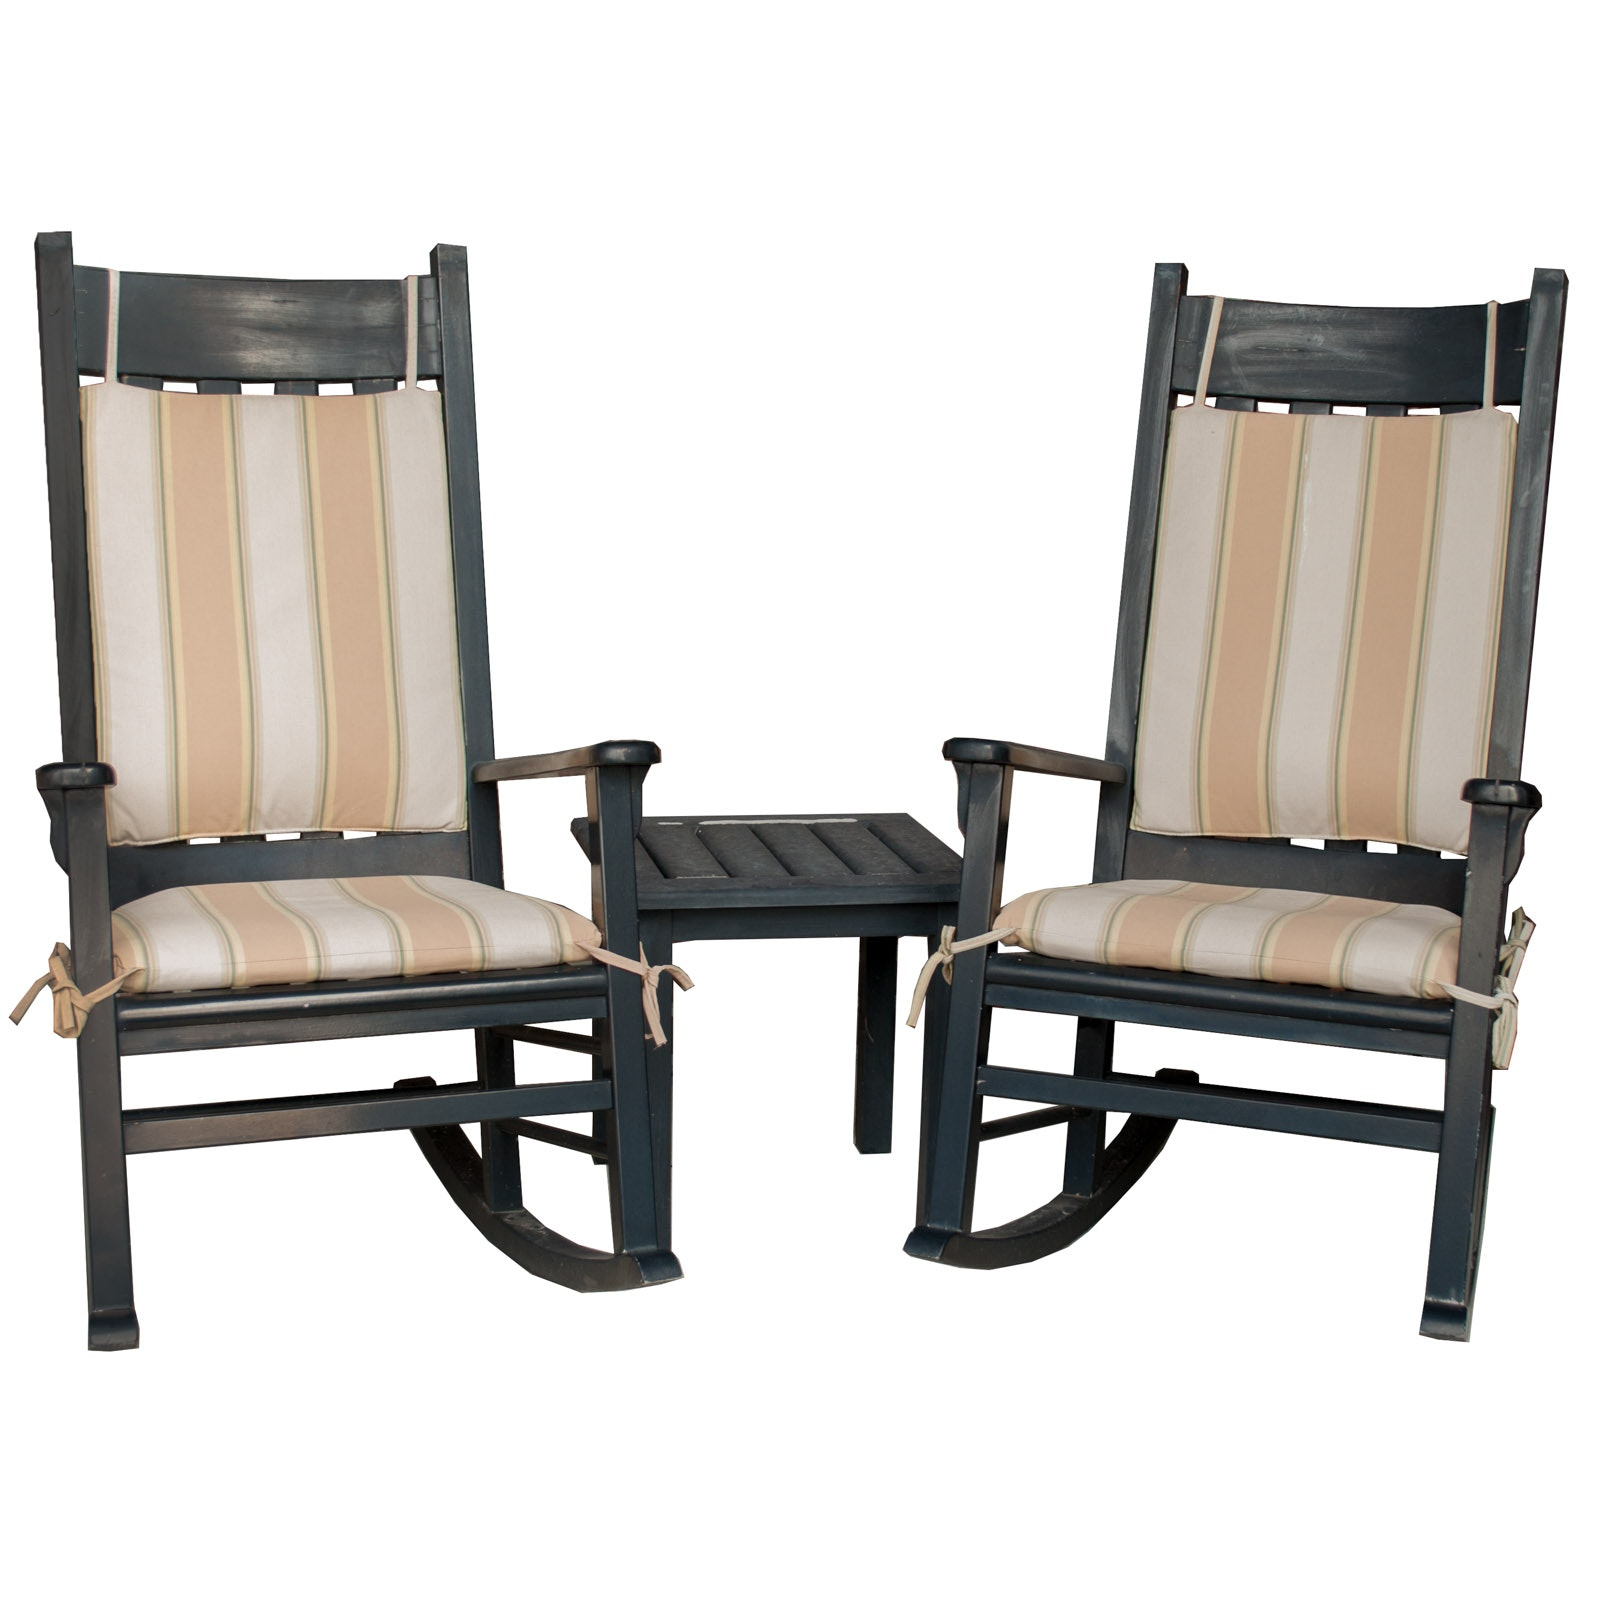 Patio Rocking Chairs and Table Set